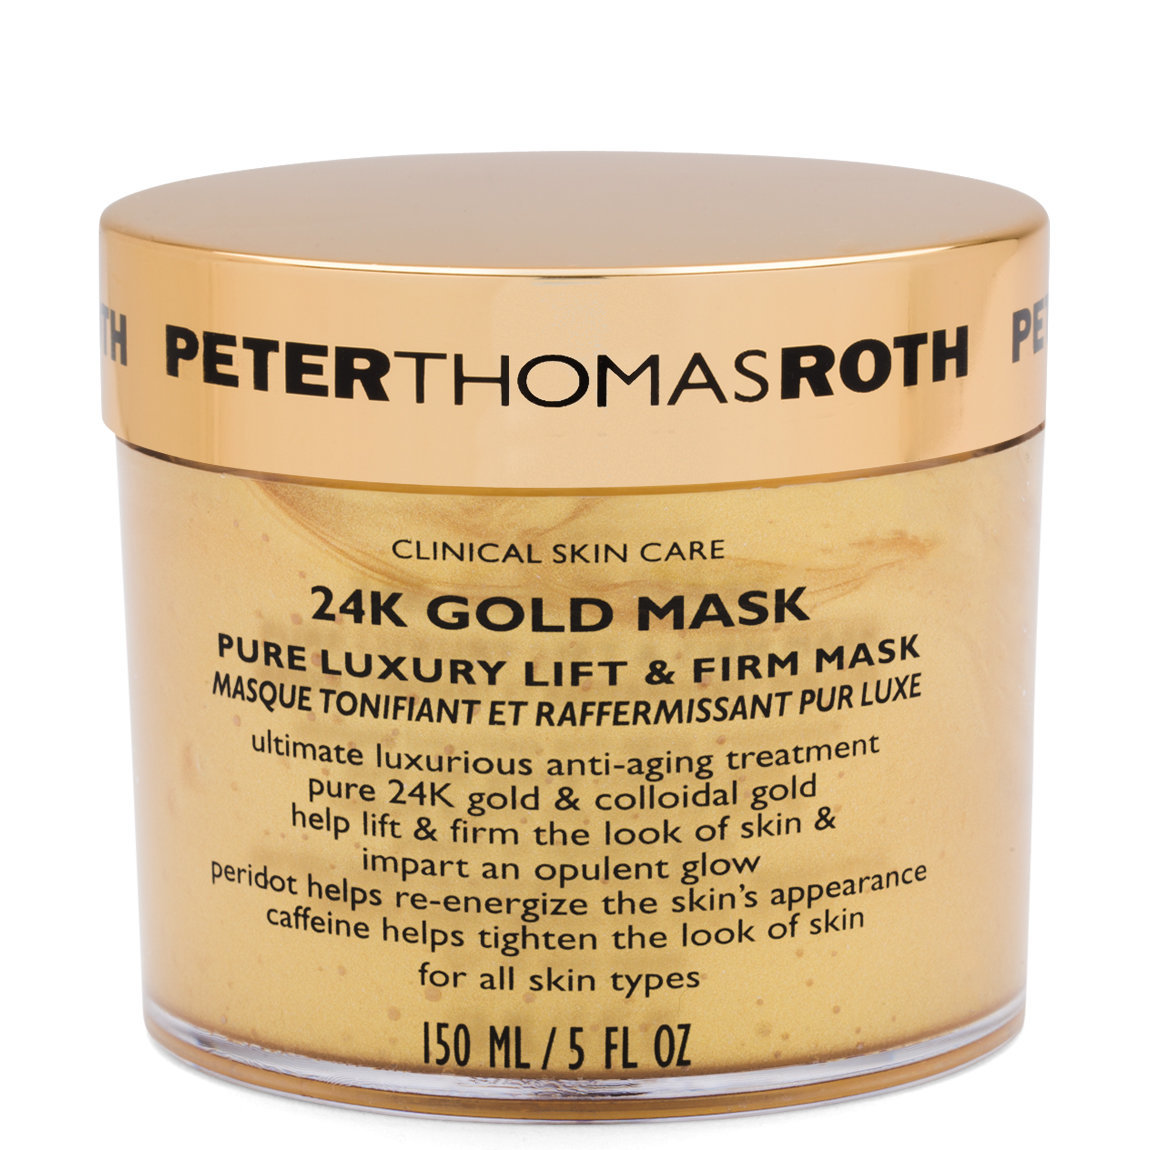 Peter Thomas Roth 24K Gold Mask product swatch.